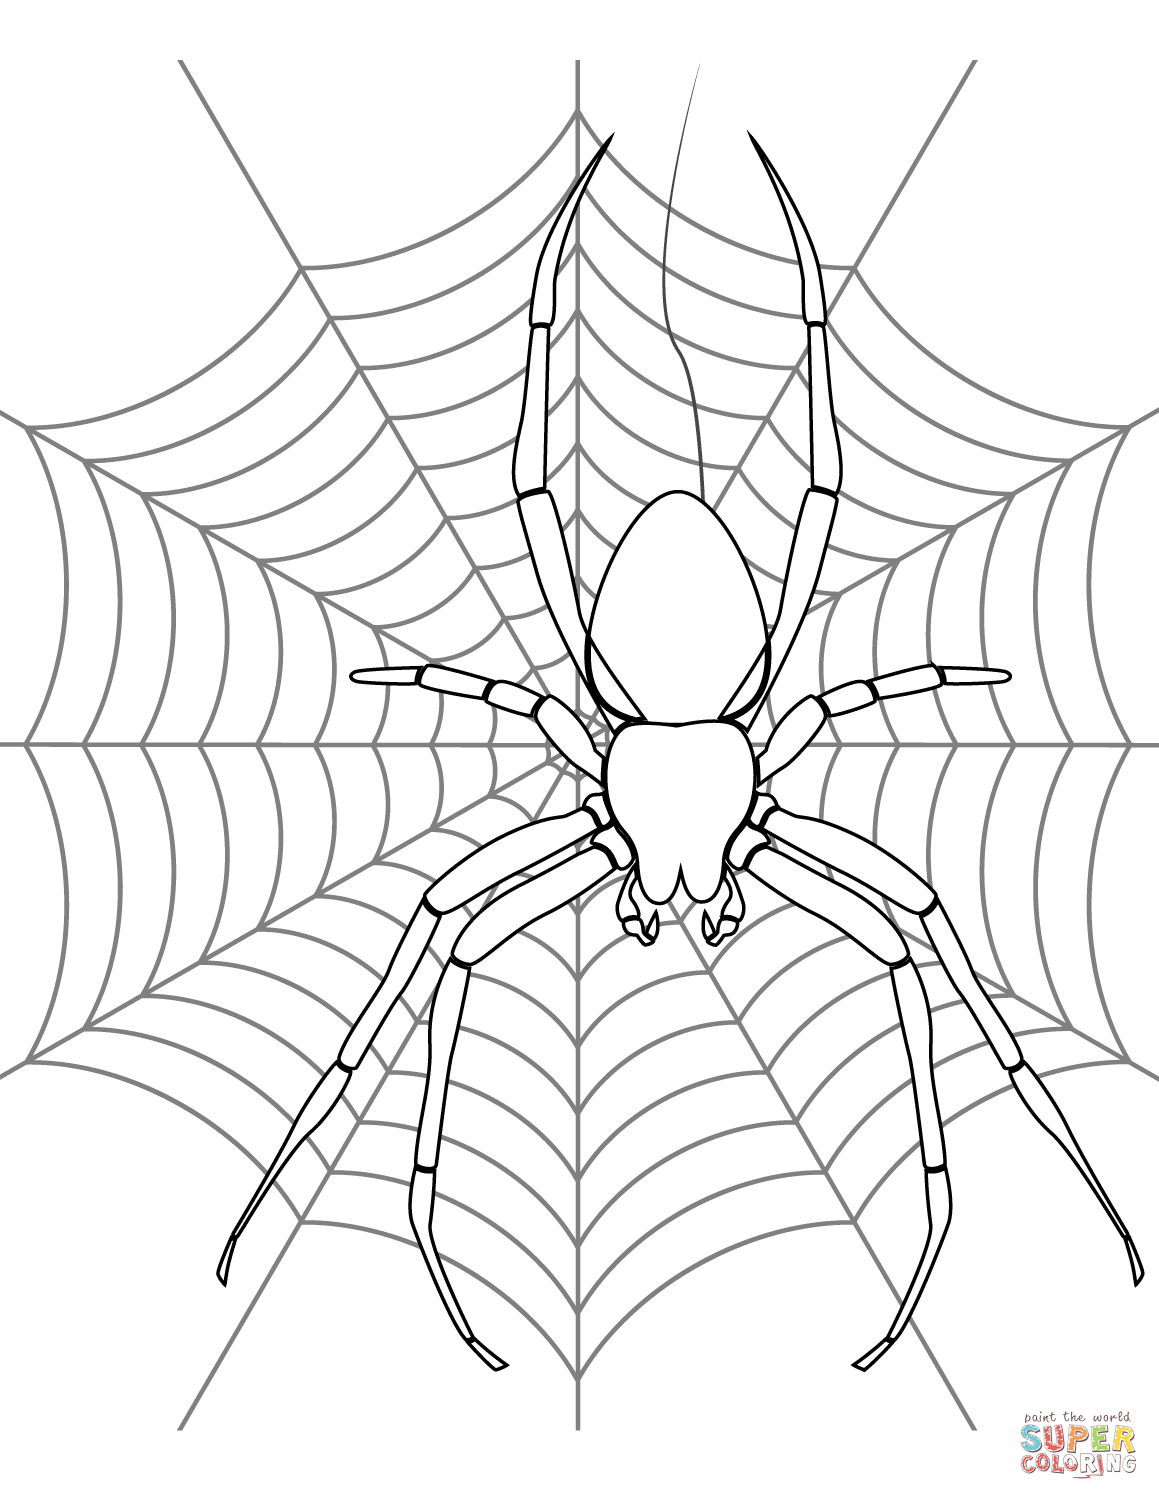 Clipart spiderman web images for Easy drawing websites